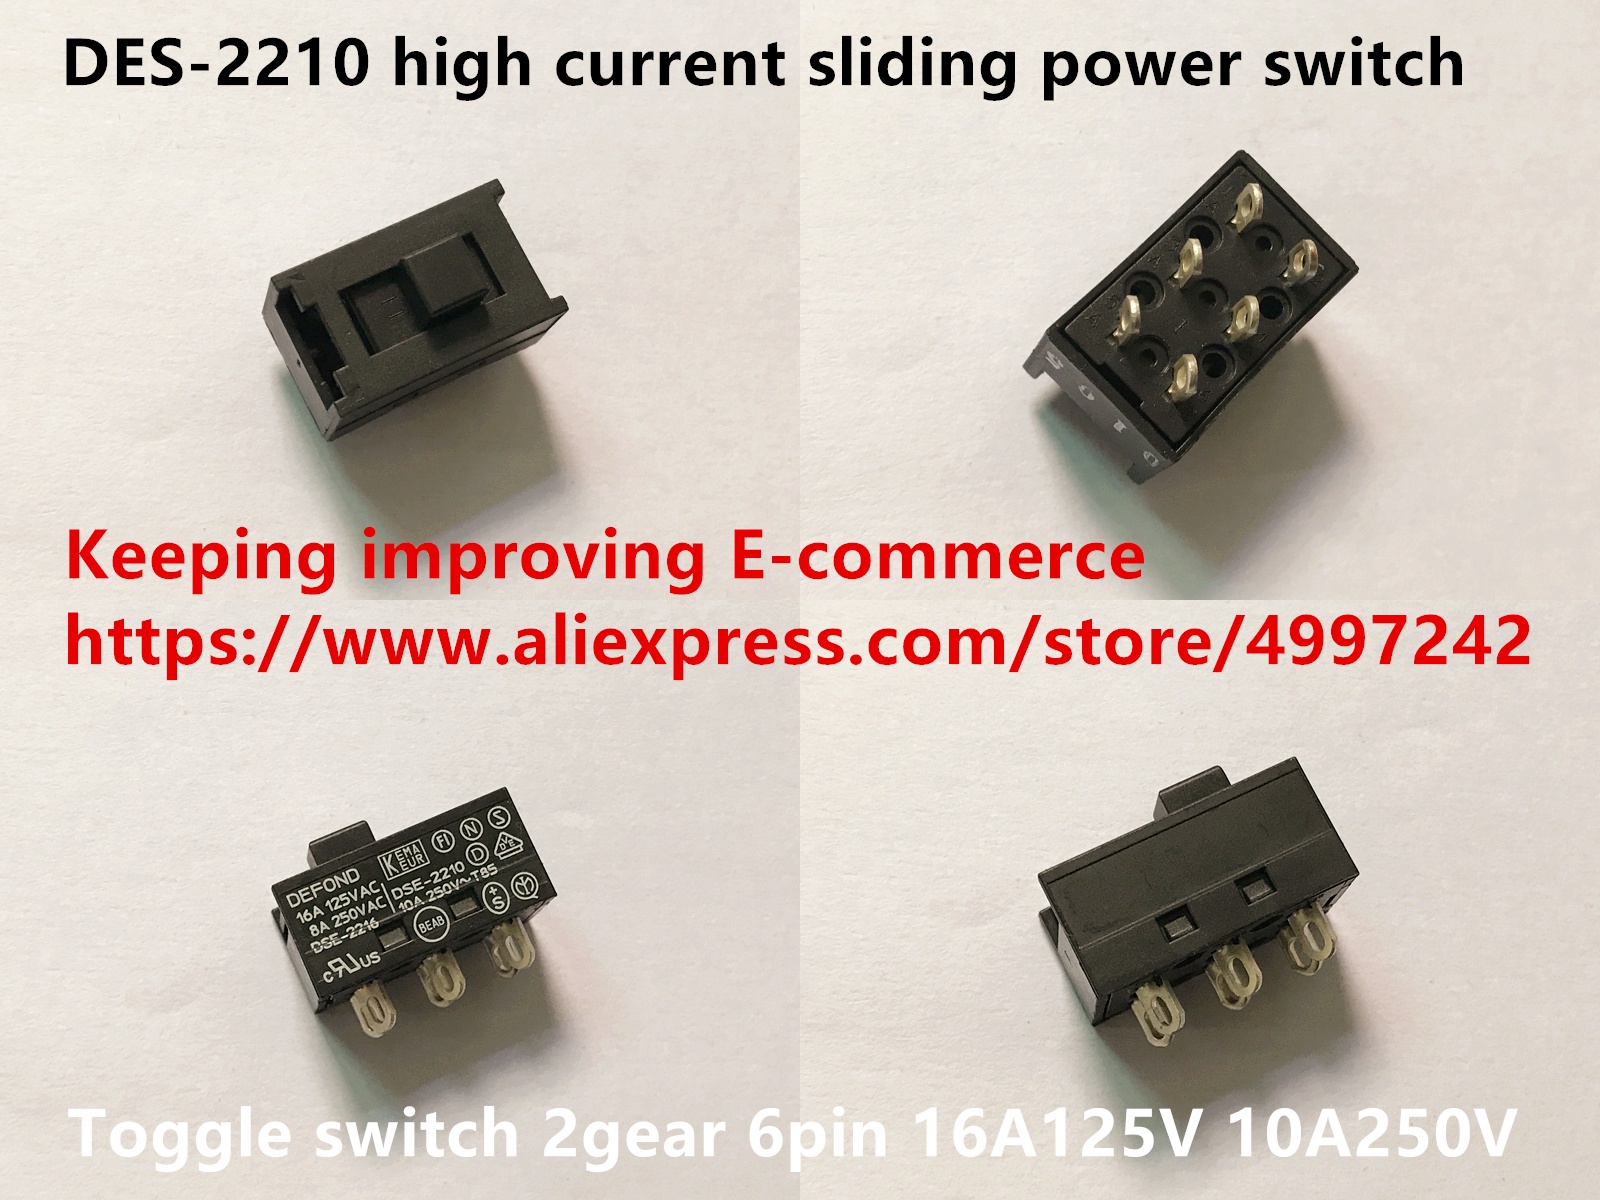 DEFOND DSE-2216 DSE-2210 Power Slide Switch 6 Pin 2 Position 10A 250VAC T85